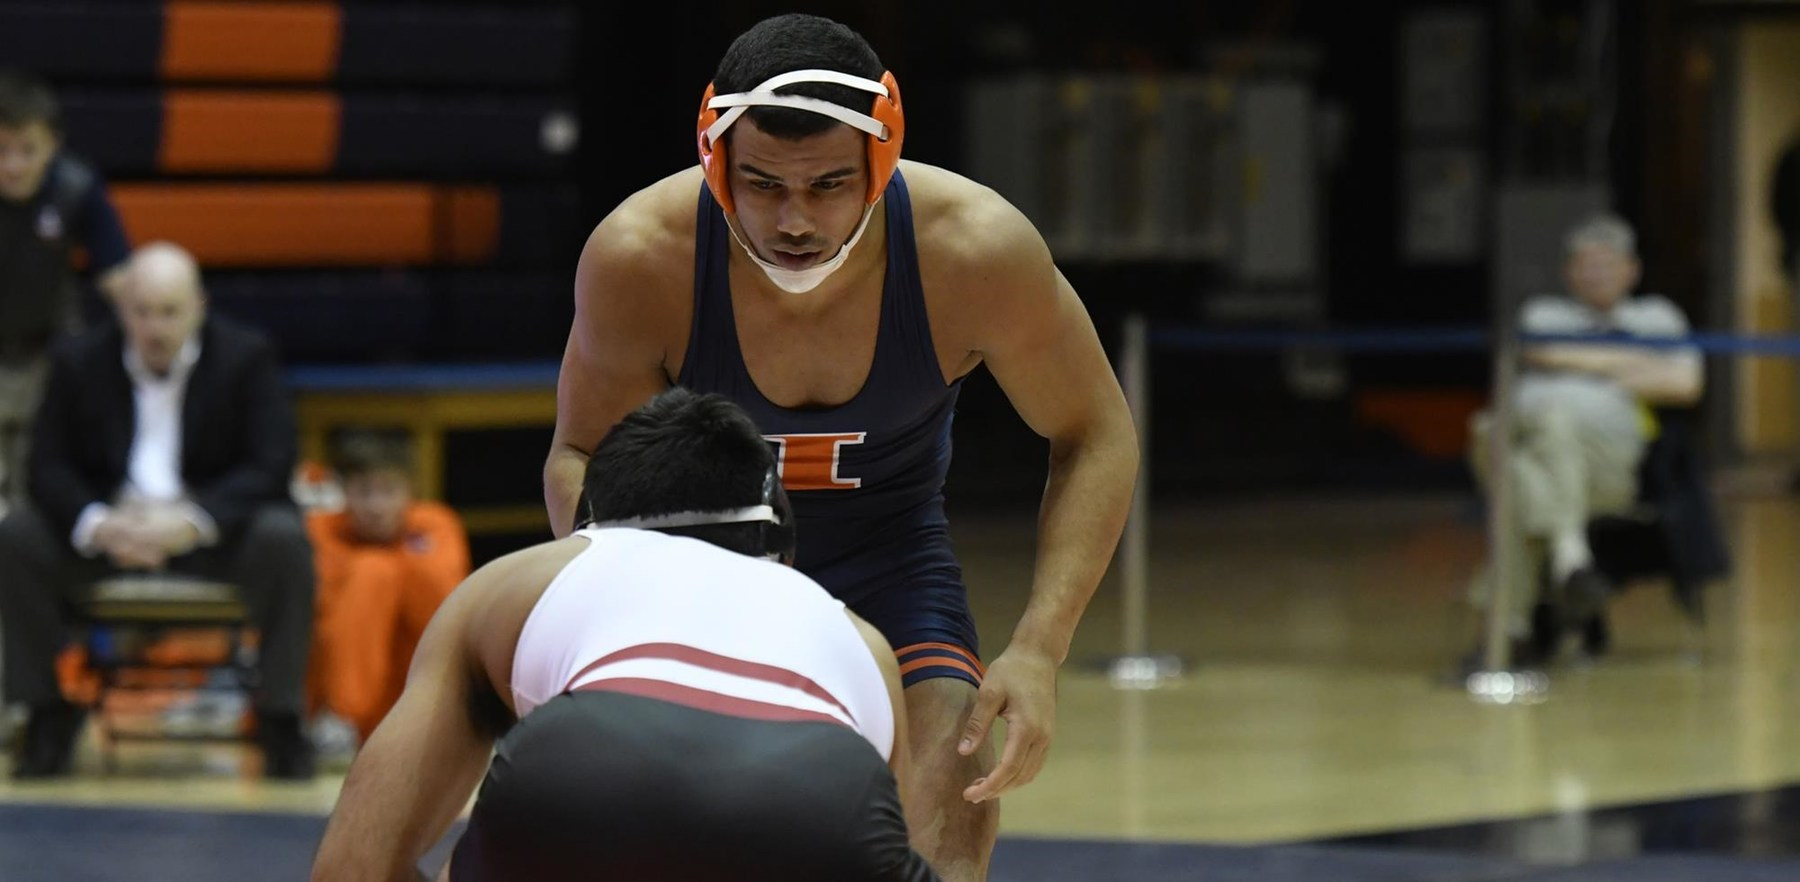 An Illini grappler approaches his opponent